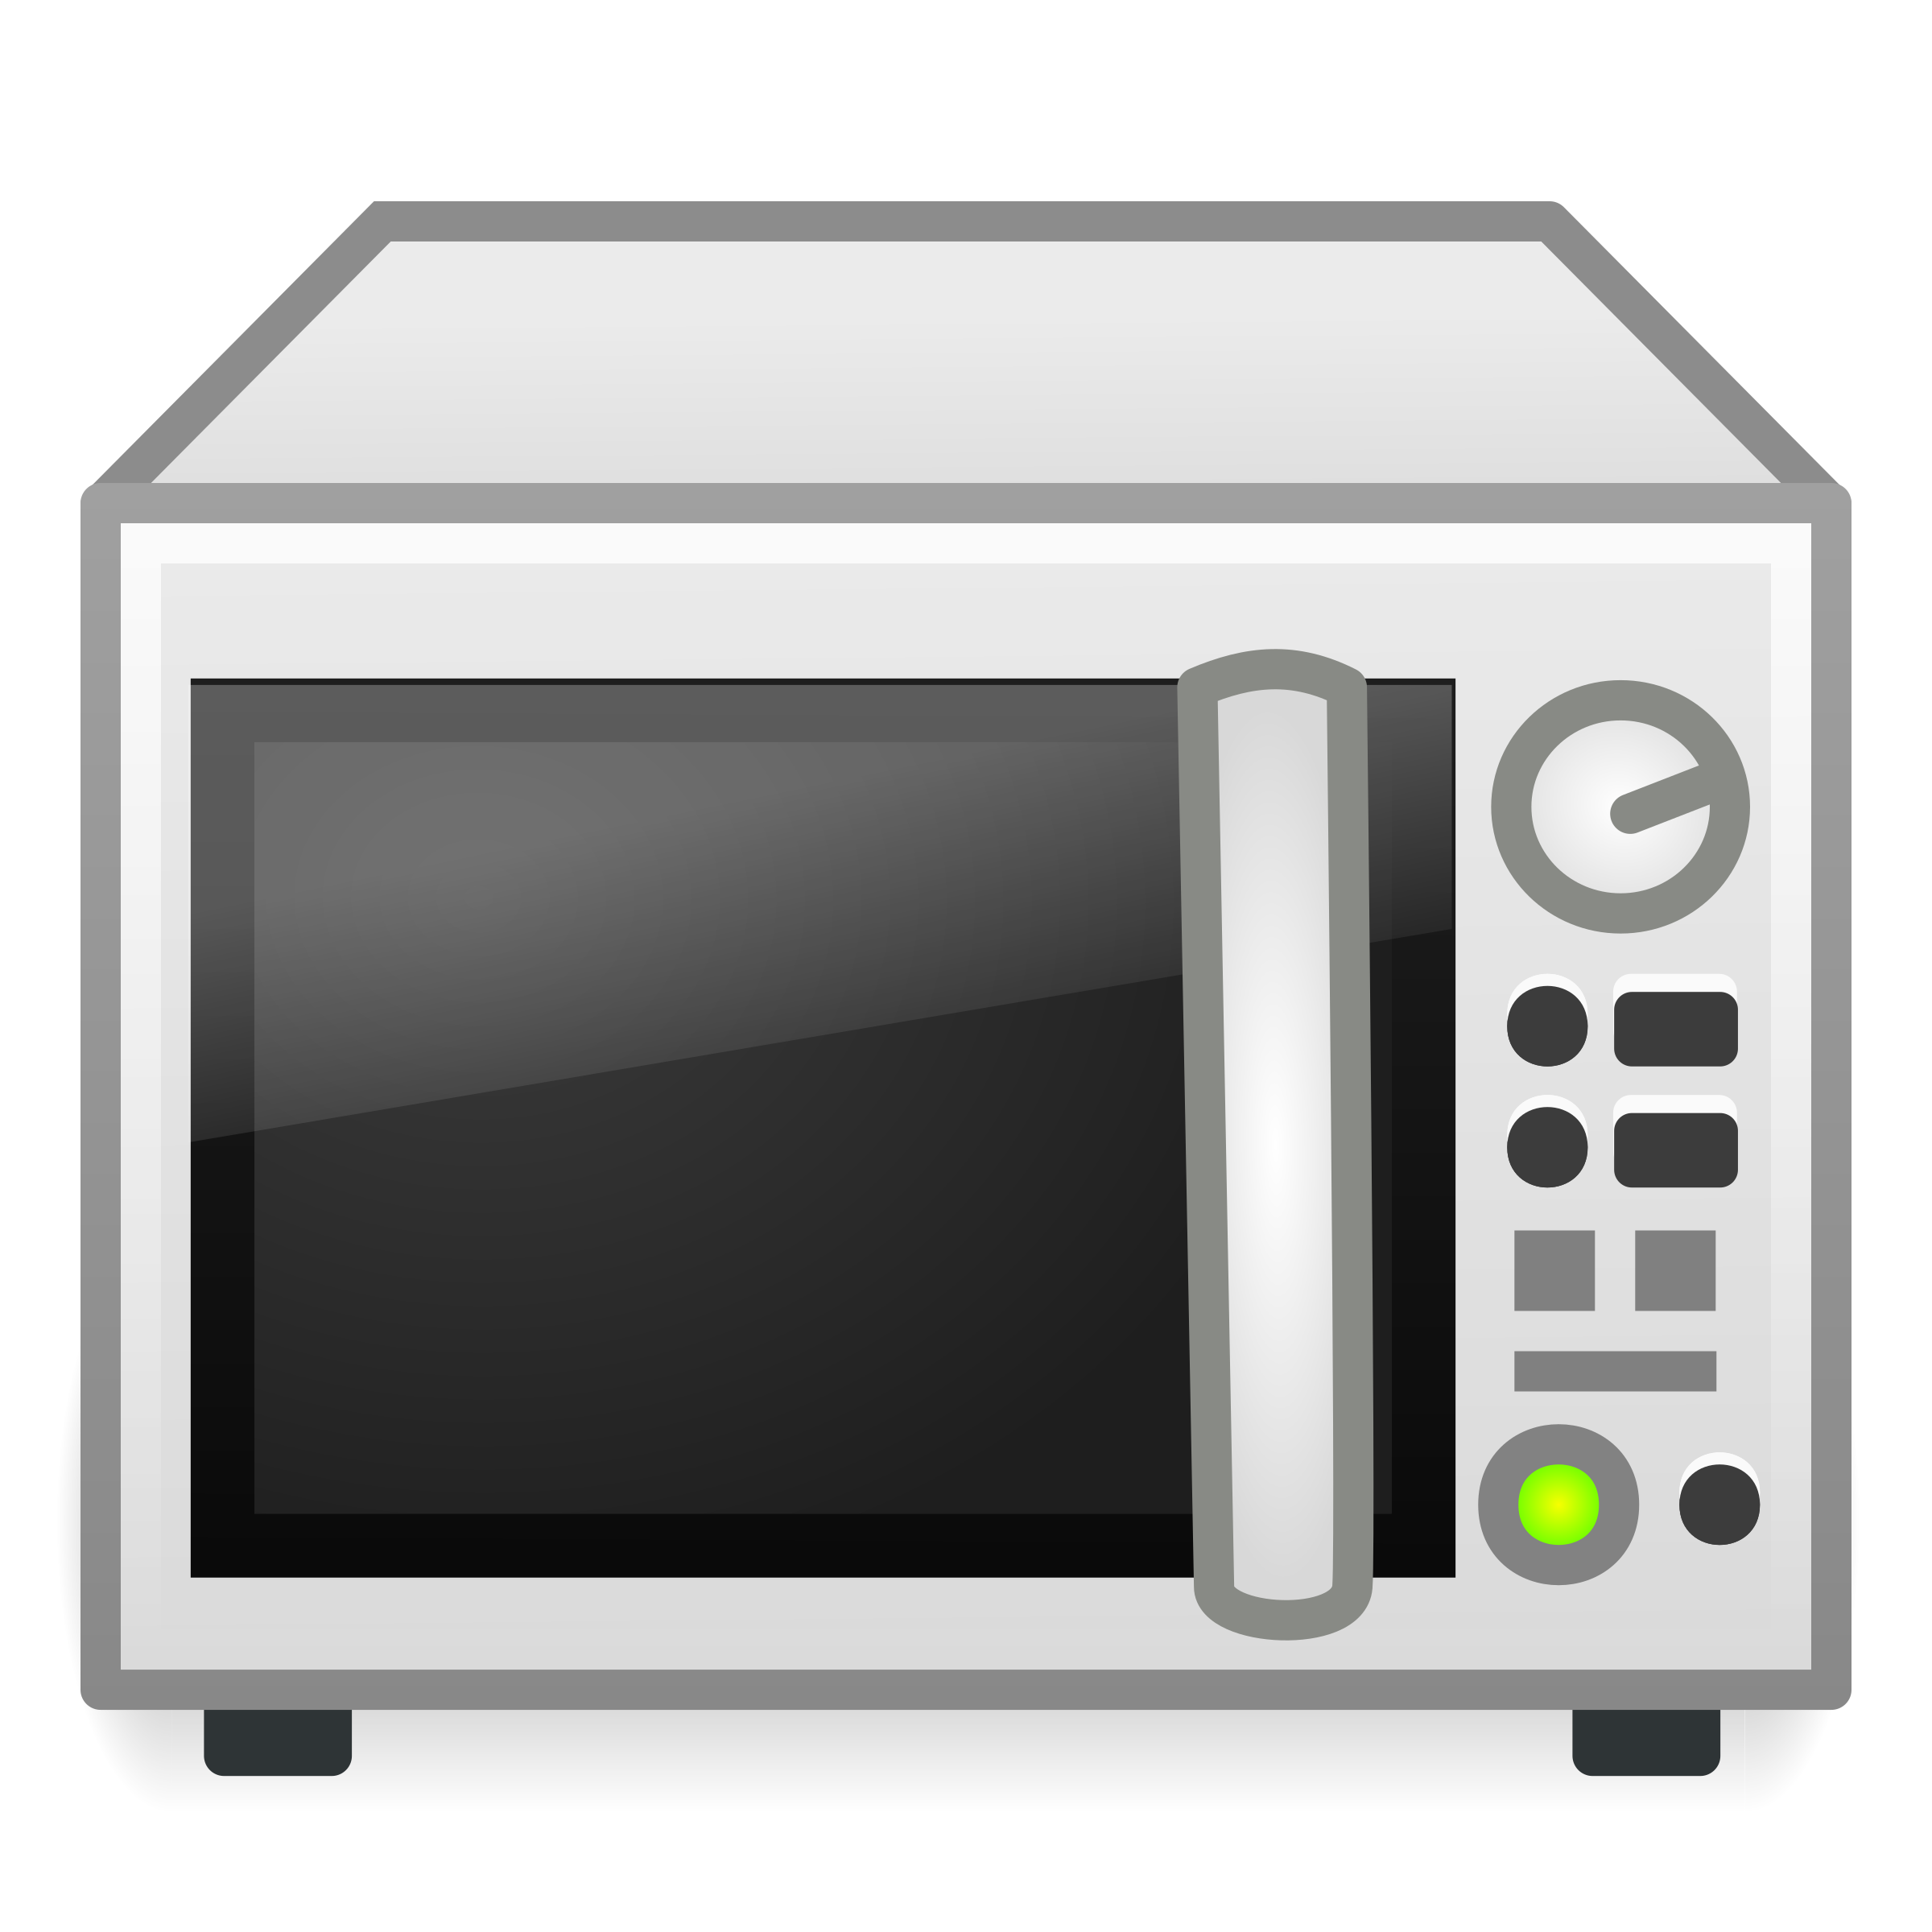 Big image png. Microwave clipart